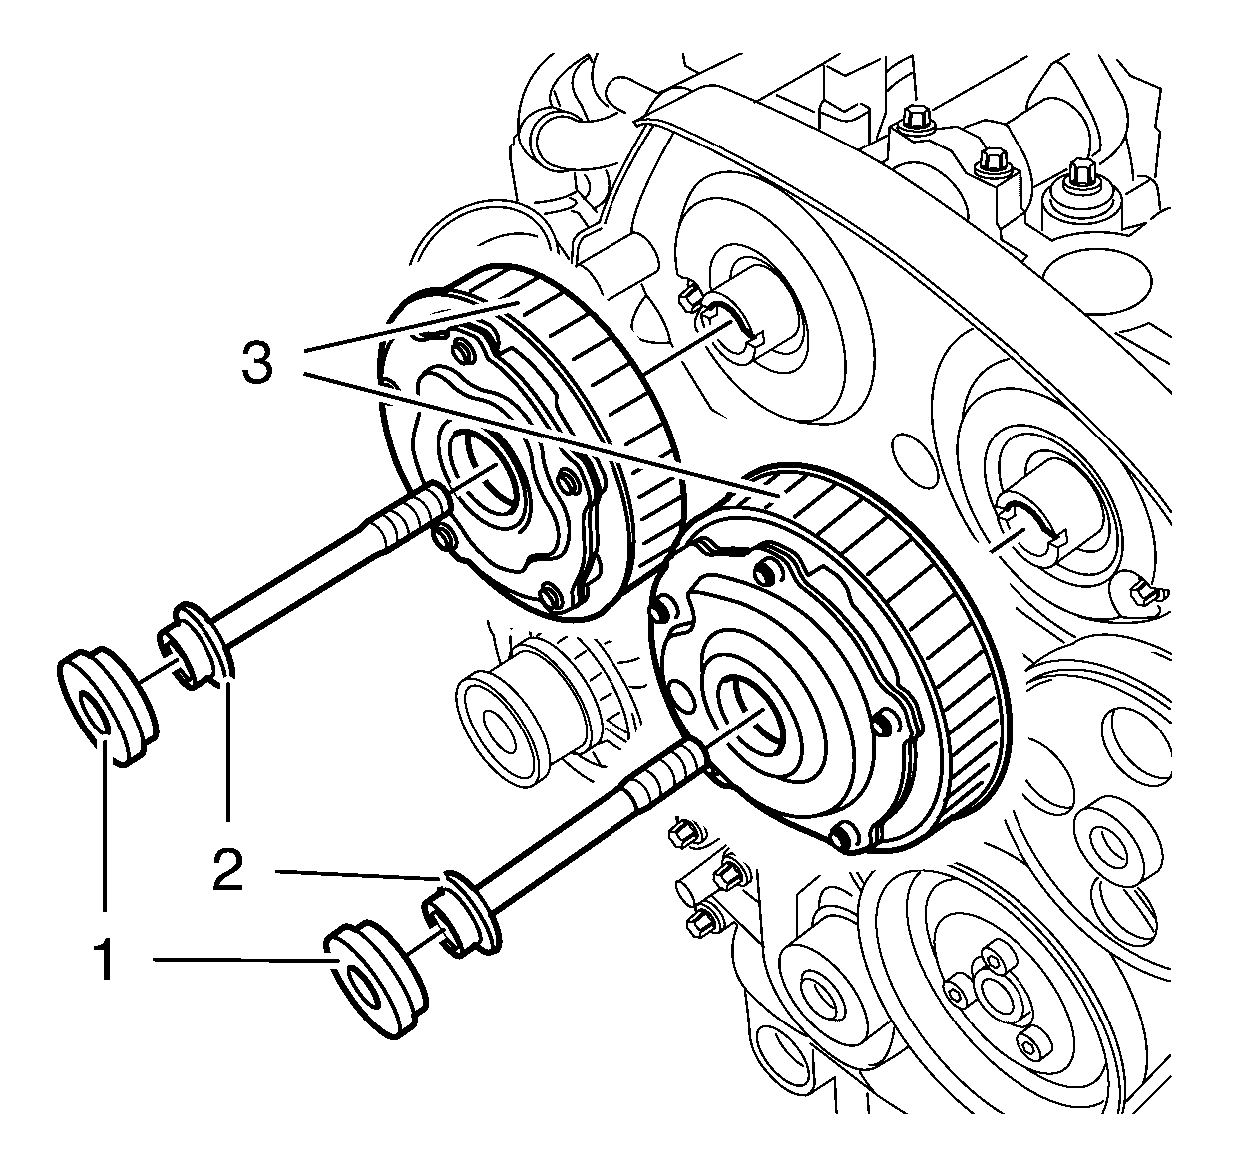 Code P0017: I Need Spec Torque for the Camshaft Intake and